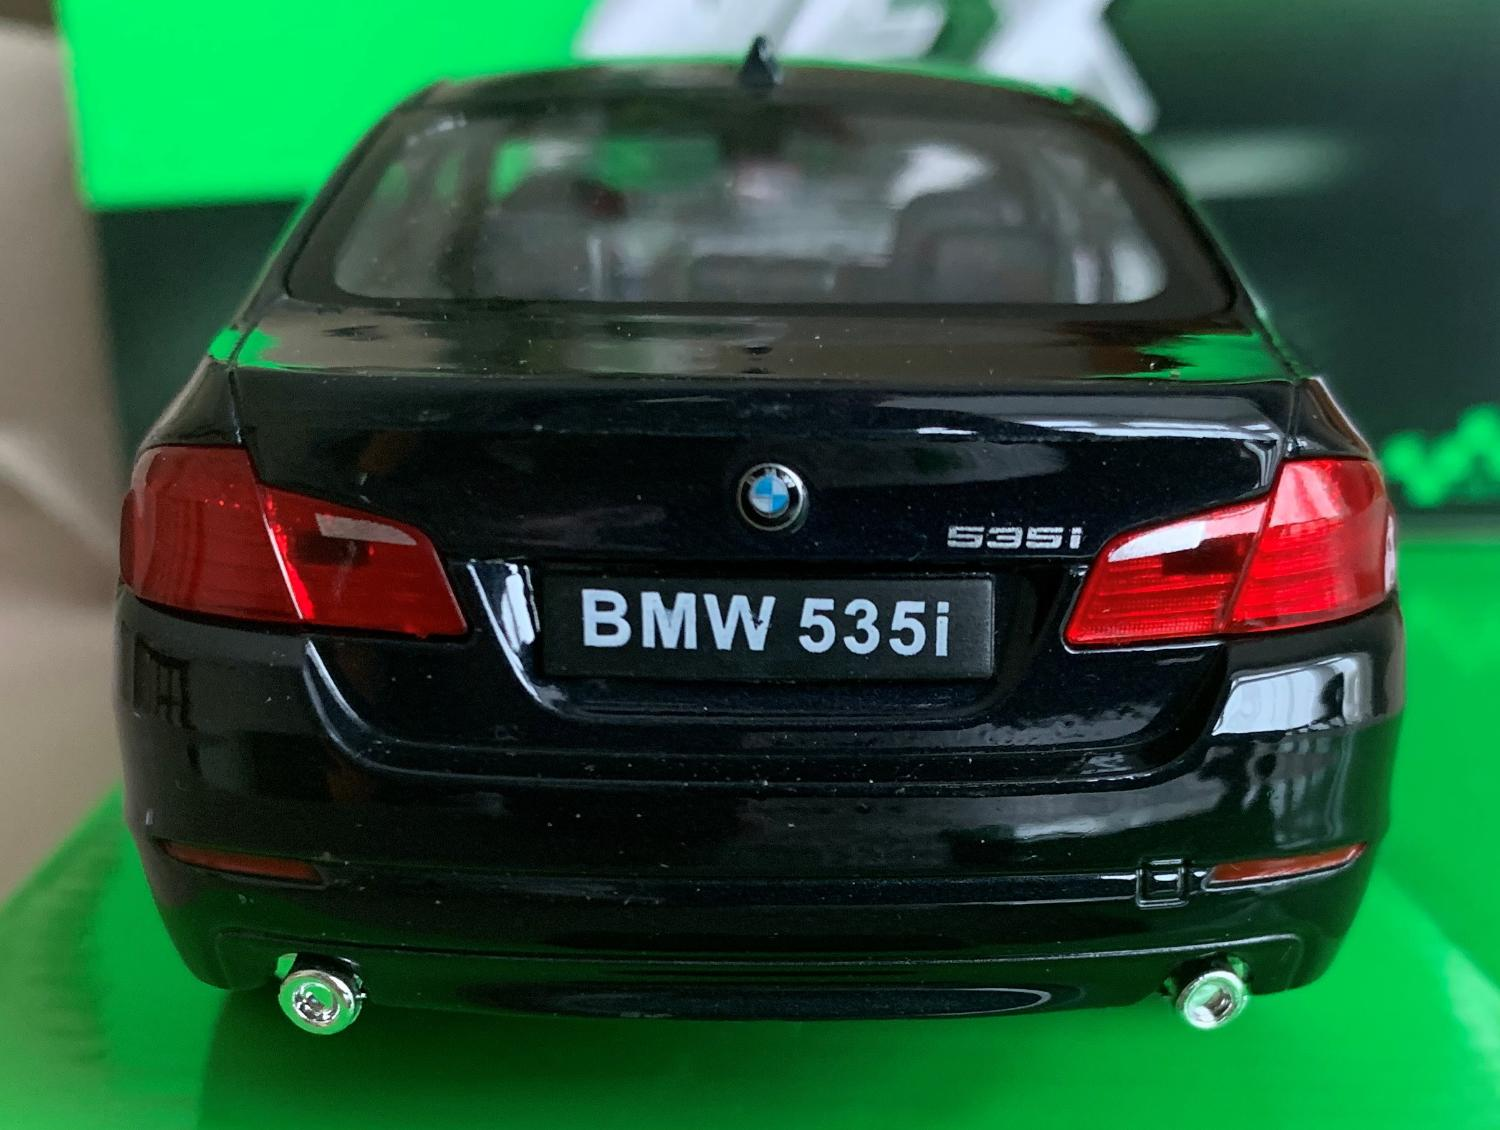 BMW 535i (F10) in metallic dark blue 1:24-27 scale diecast model from Welly